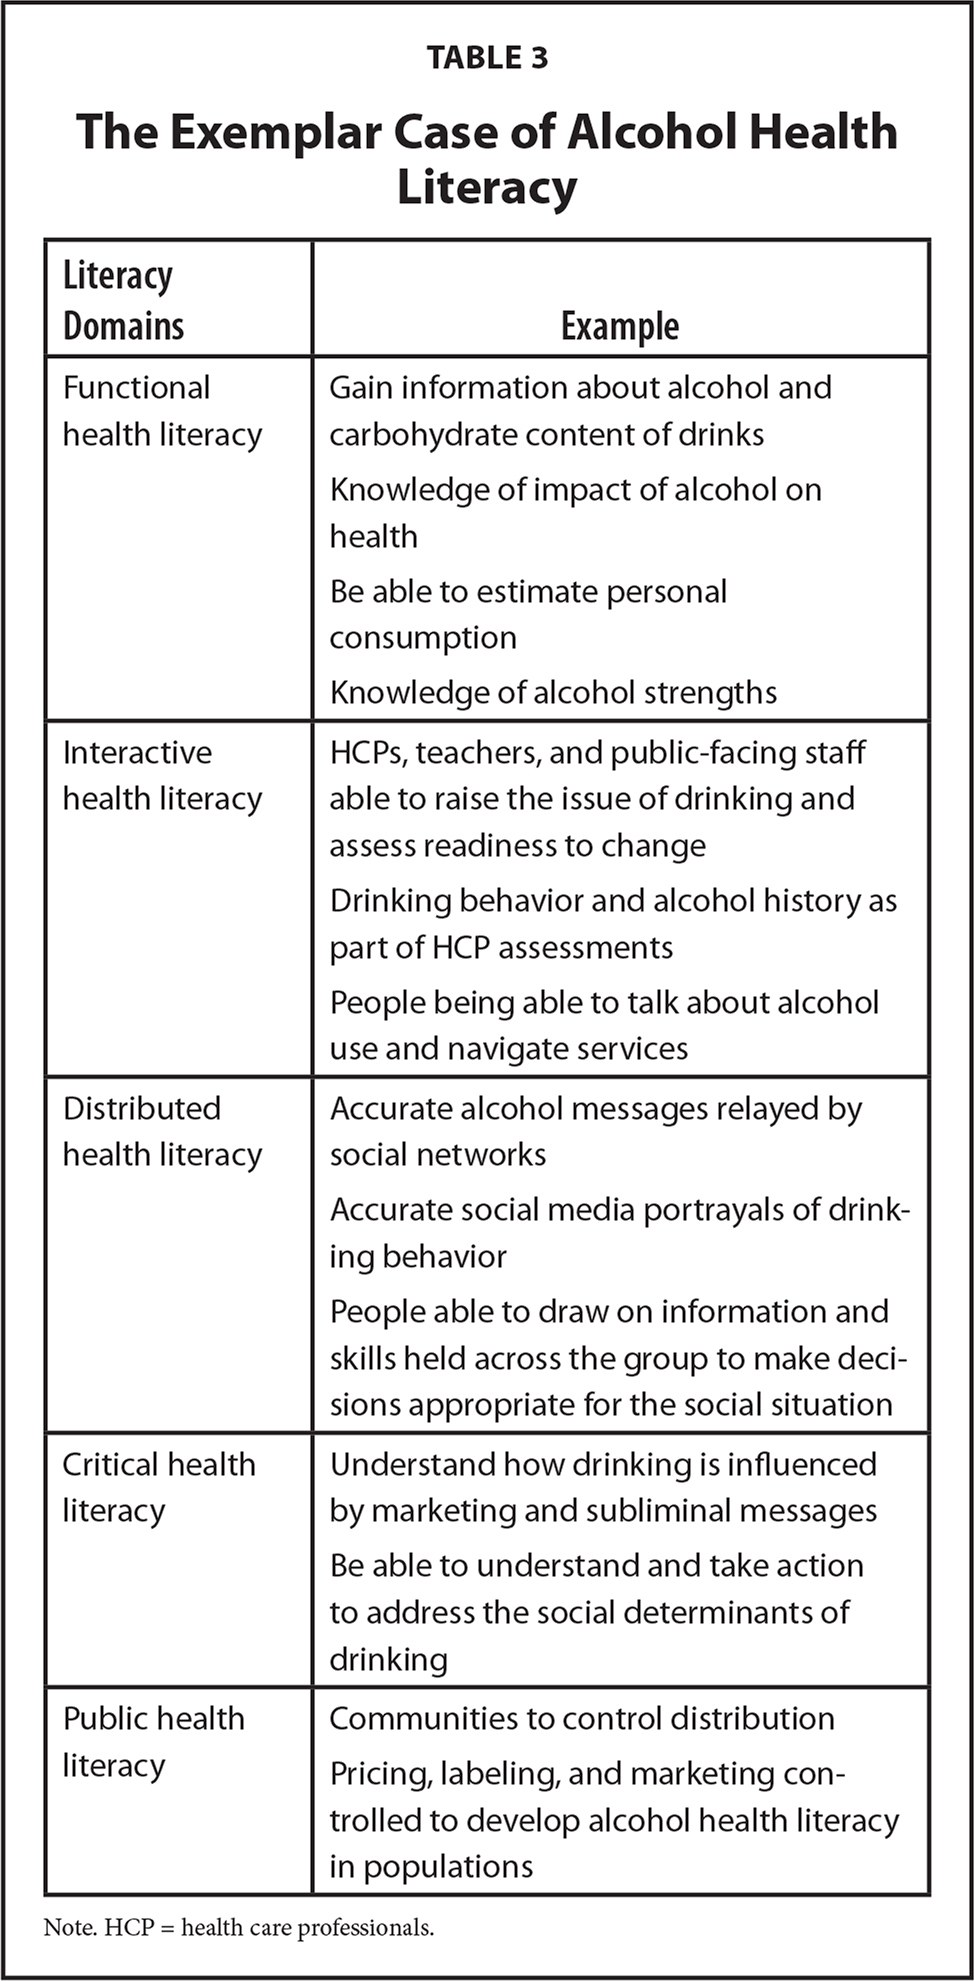 The Exemplar Case of Alcohol Health Literacy